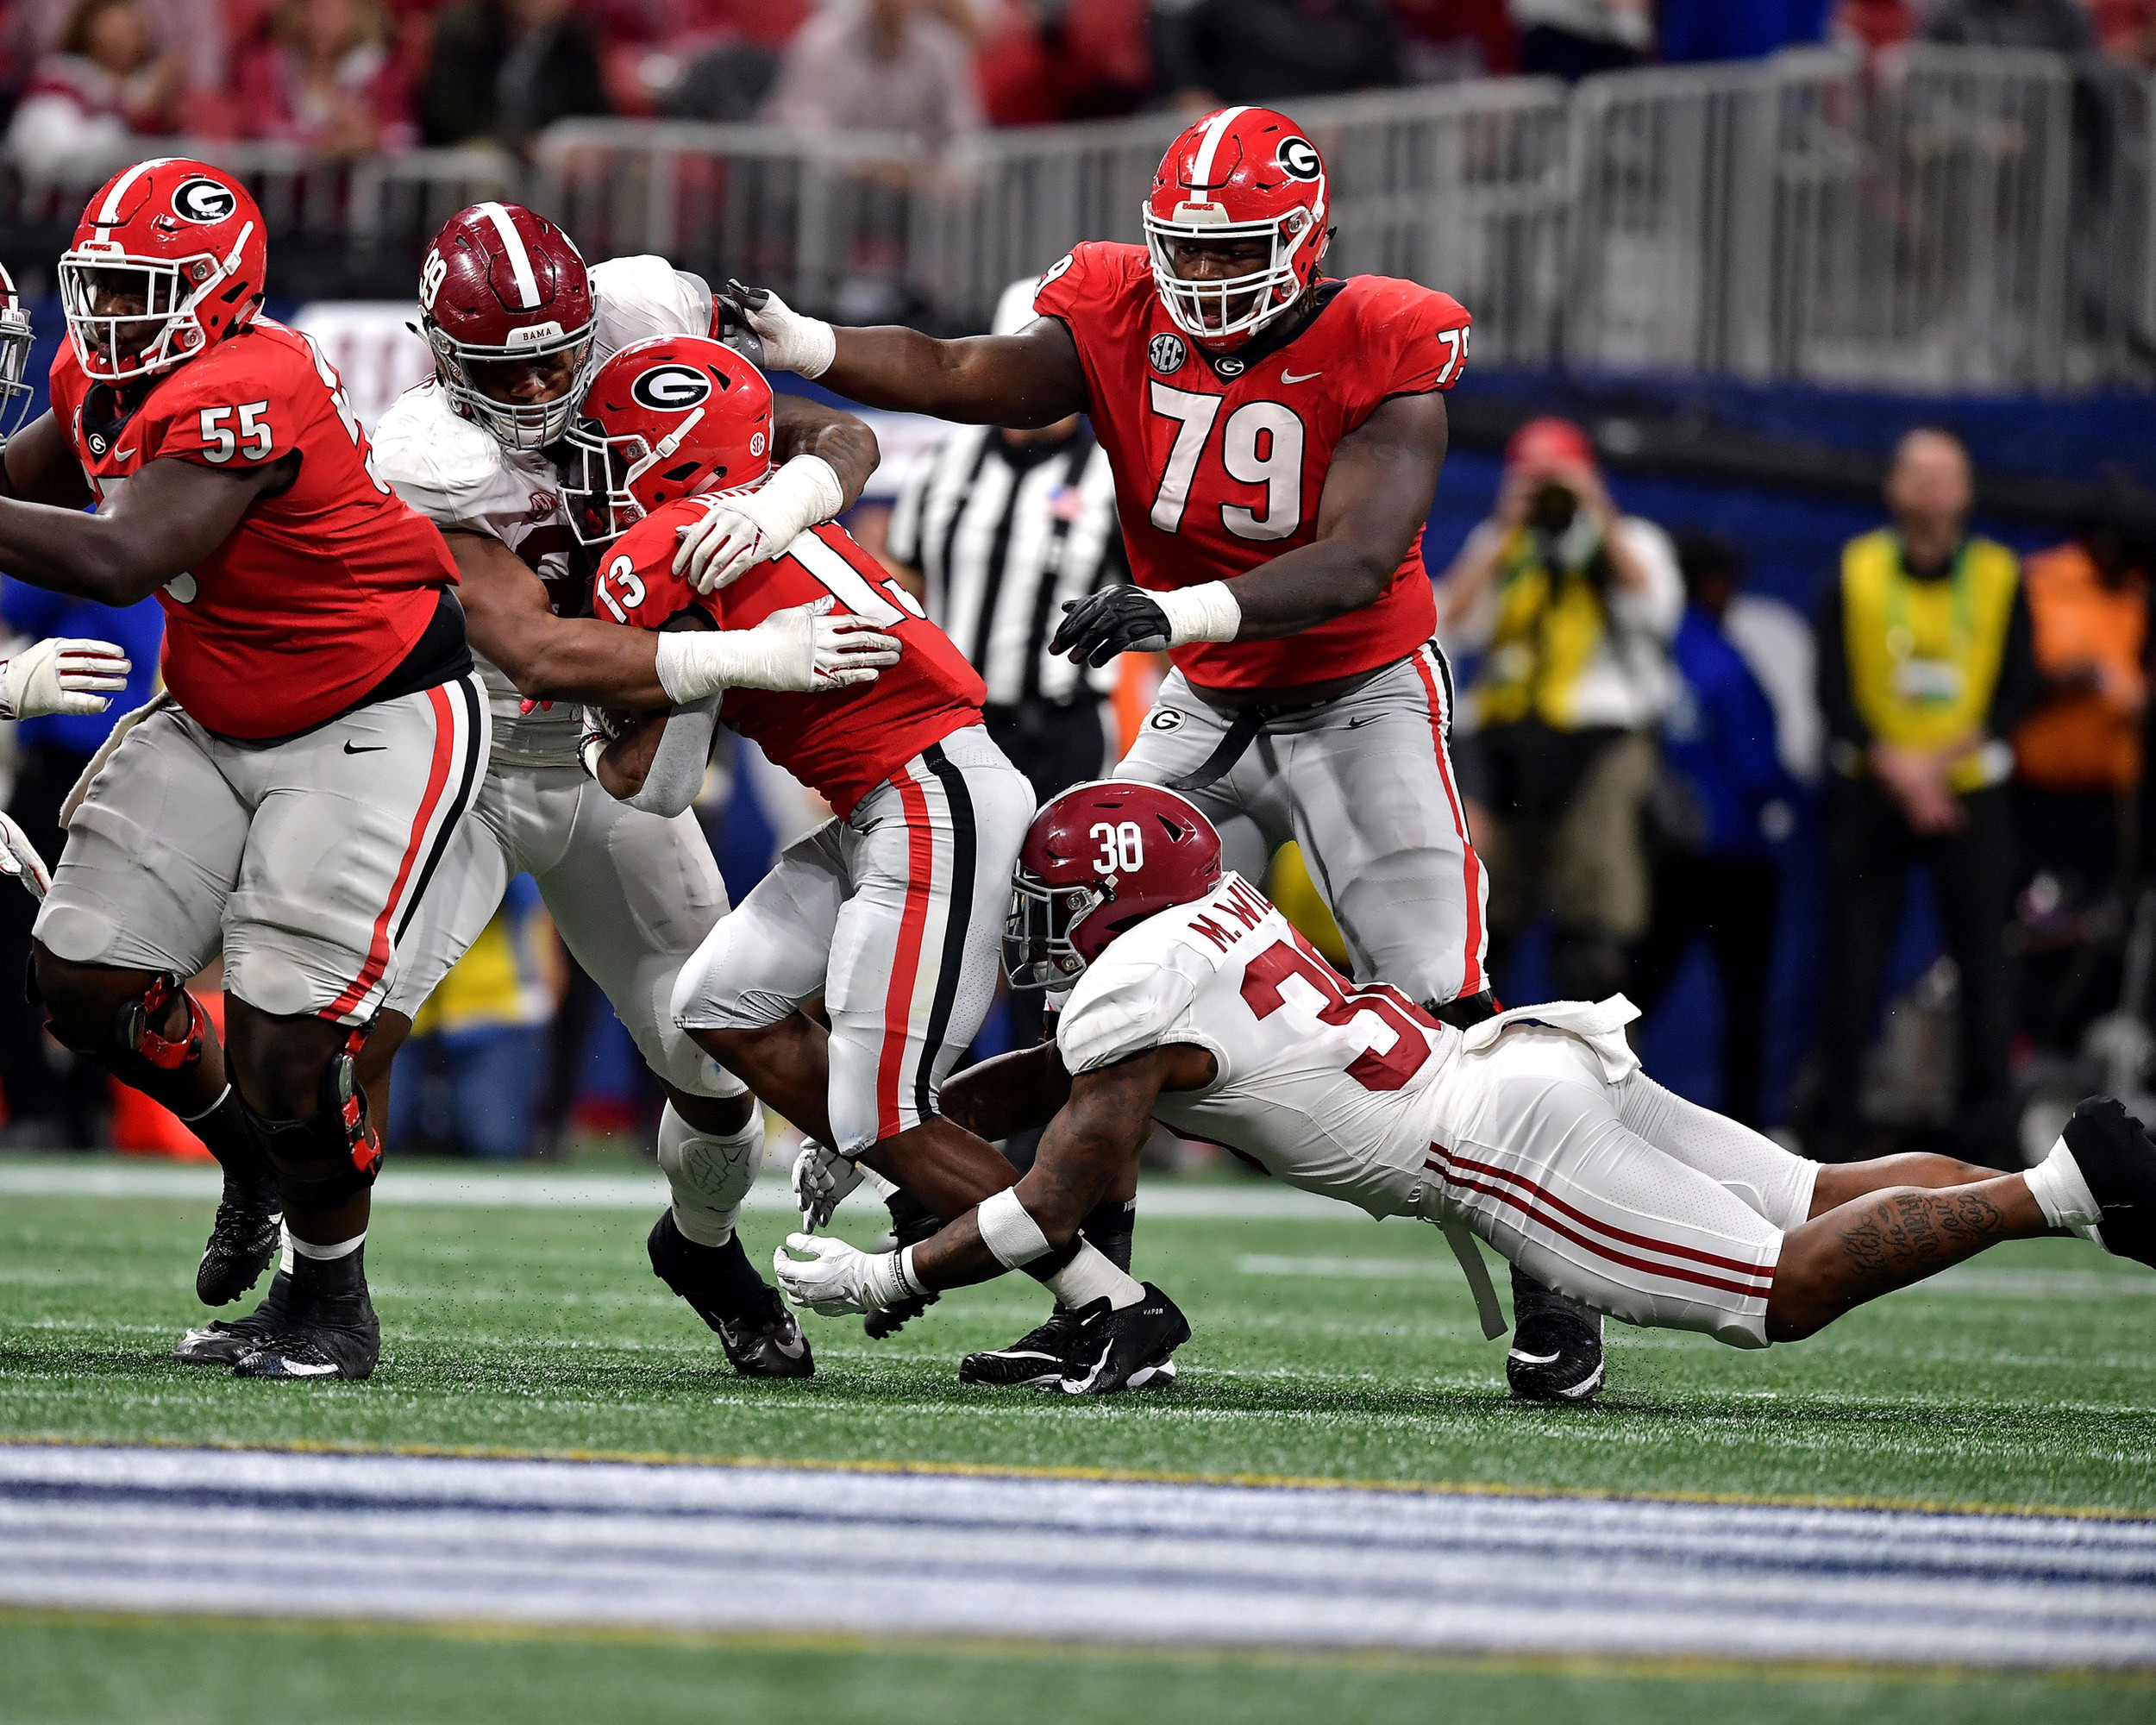 Georgia Bulldogs running back Elijah Holyfield (13) is covered up in the second half of the 2018 SEC Championship football game against the Alabama Crimson Tide at Mercedes-Benz Stadium in Atlanta, Ga., on Dec. 1, 2018. Alabama wins 35-28. (Photo by Lee Walls)